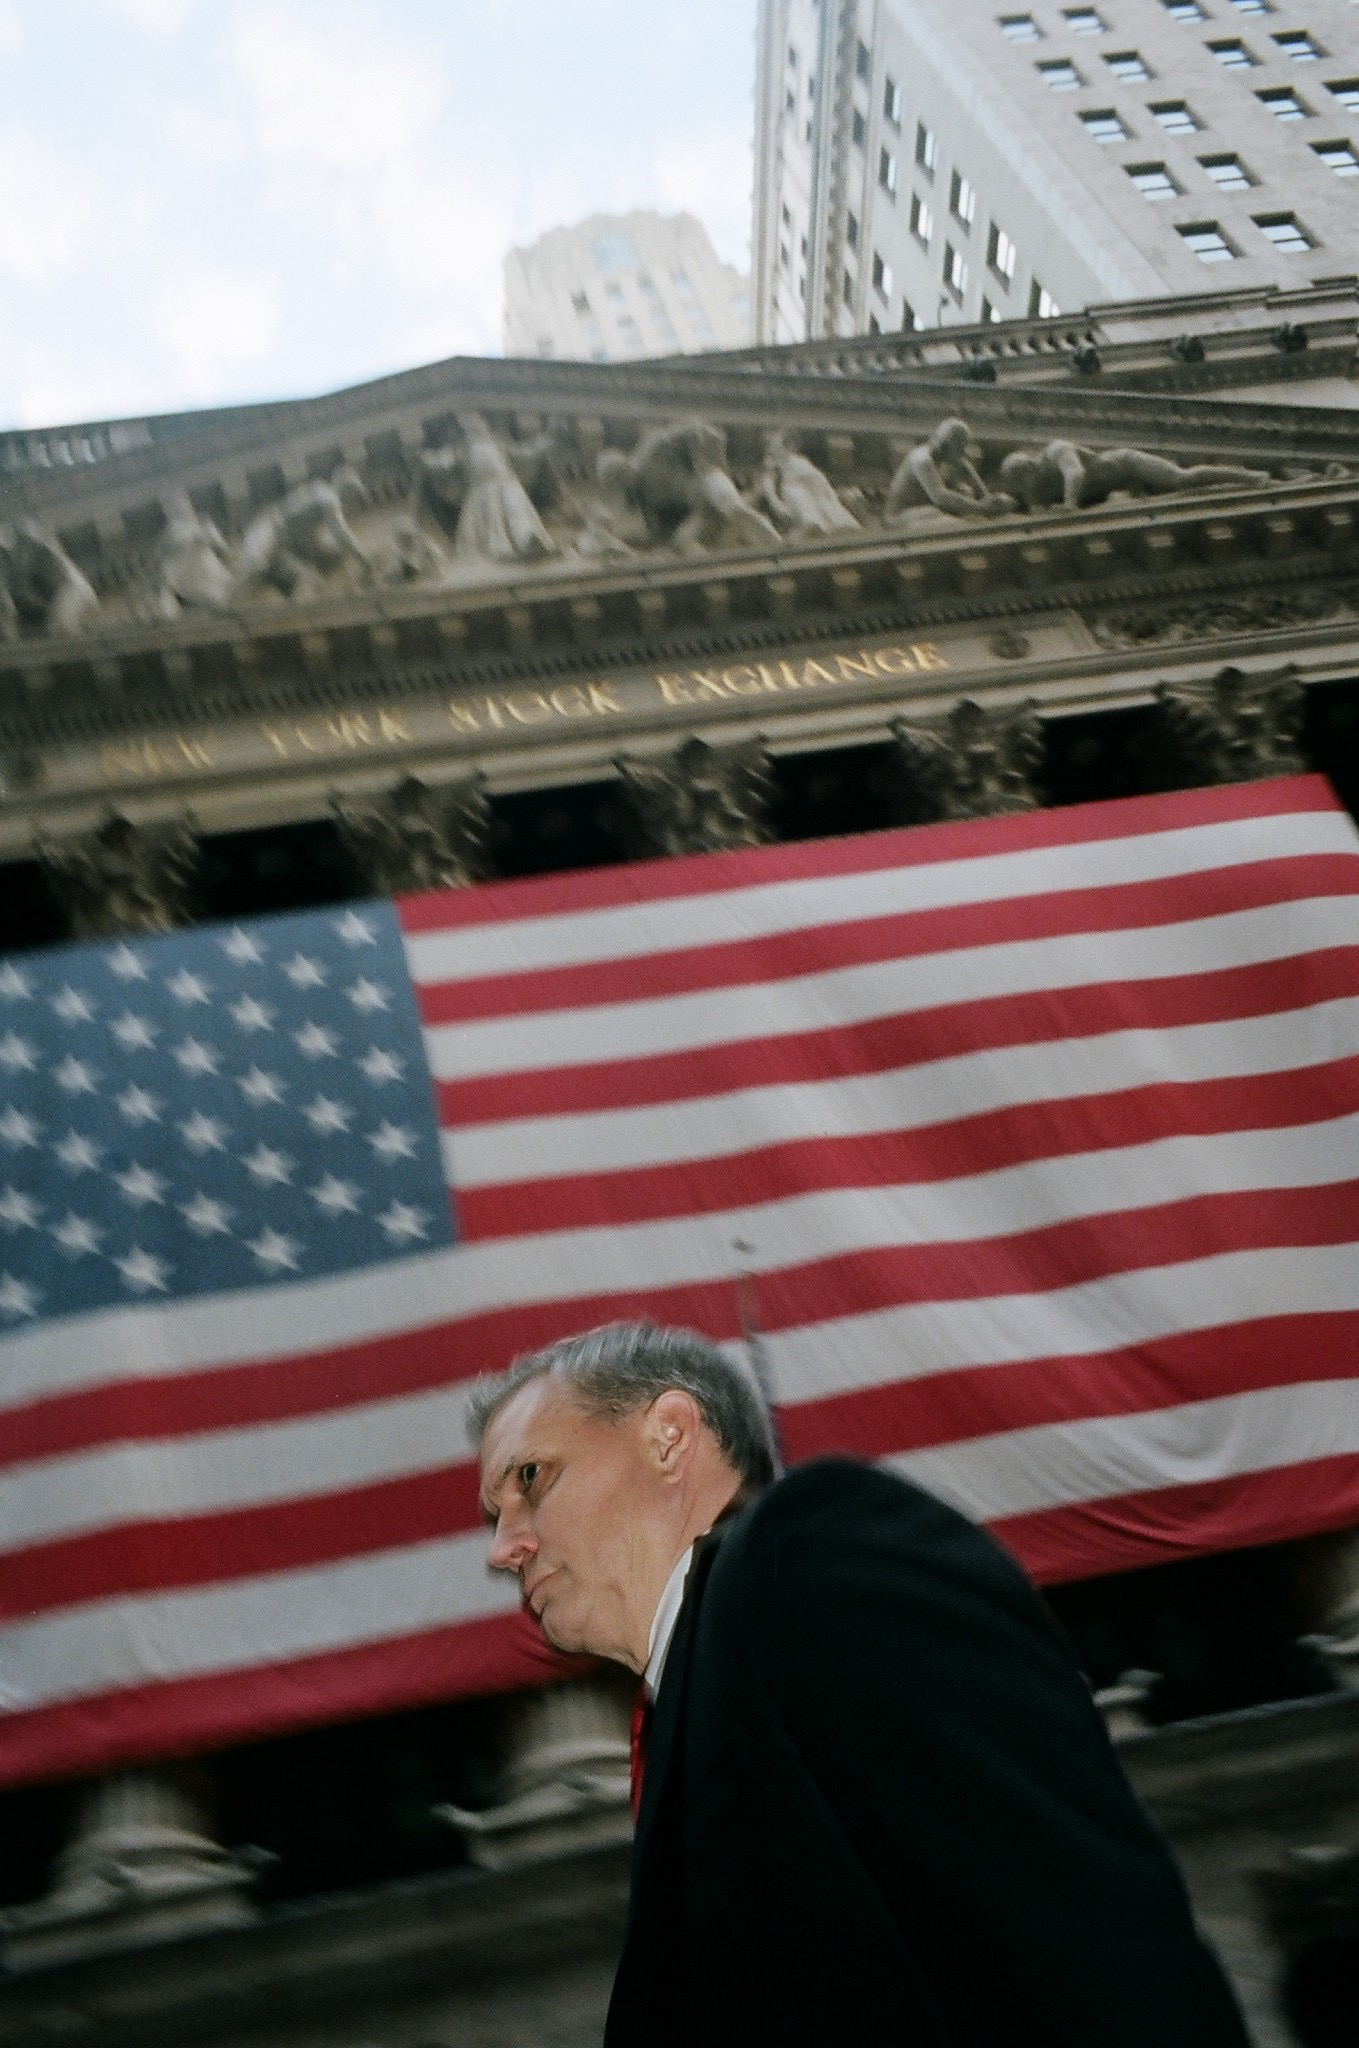 Suits. Wall Street American flag.